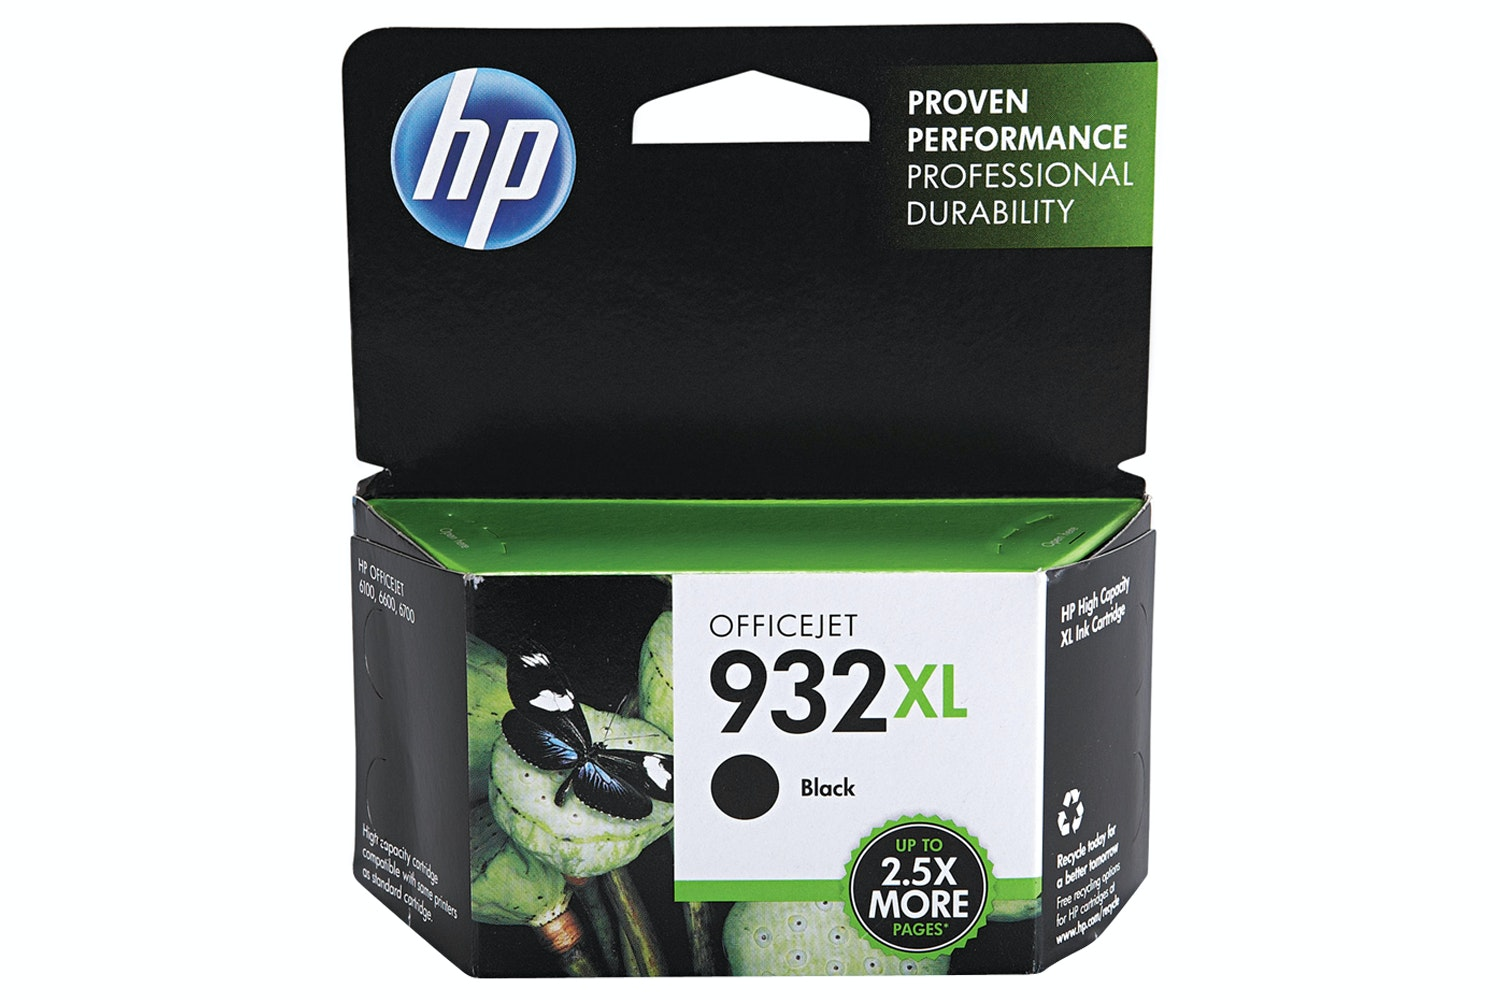 HP 932XL Black Ink